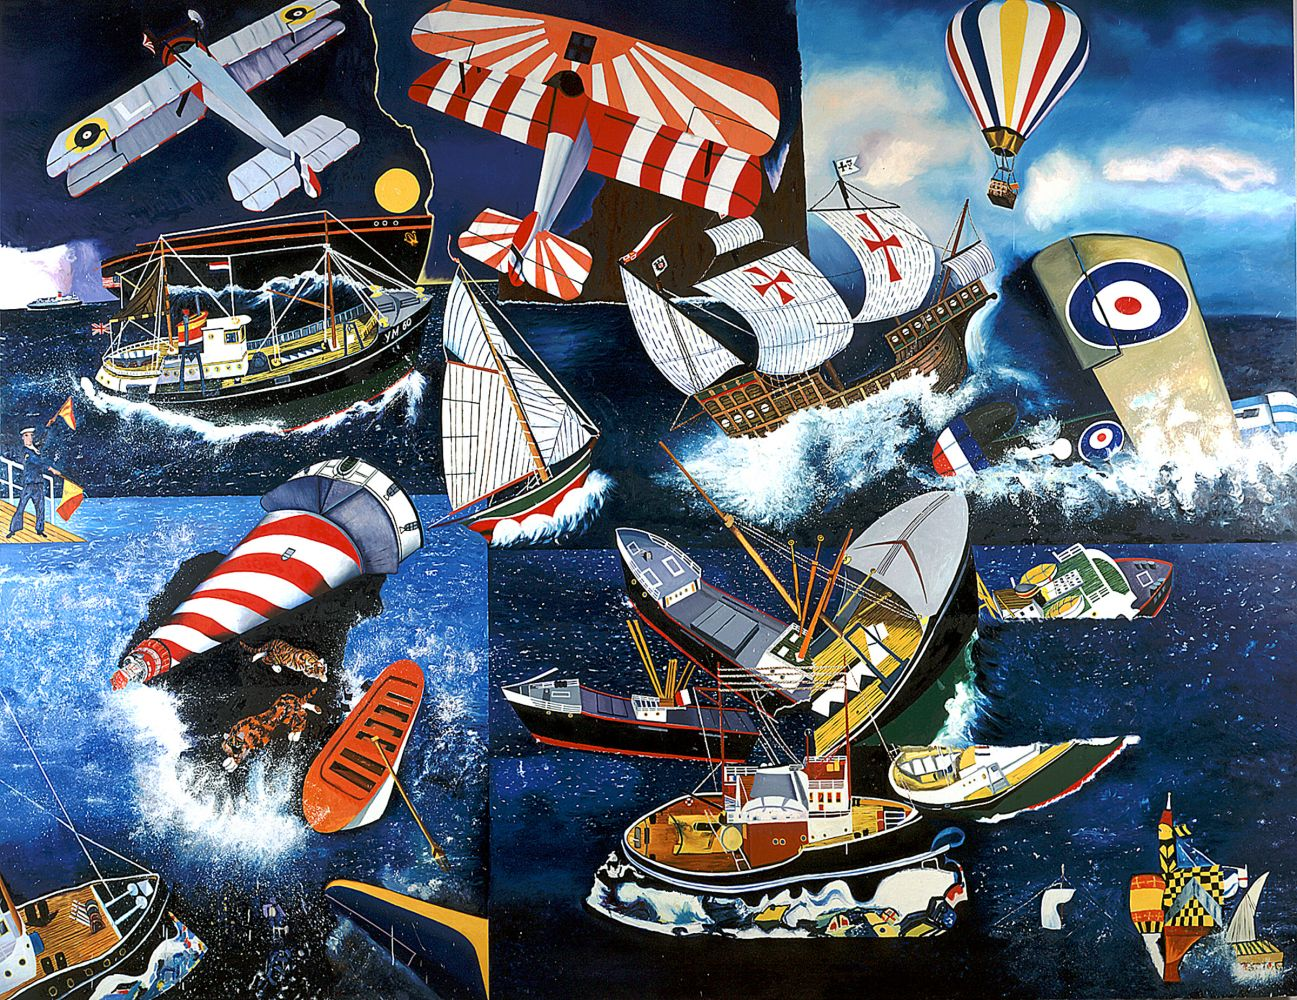 painting of collaged imagery of the sea, including ships, boats, biplanes and a lighthouse